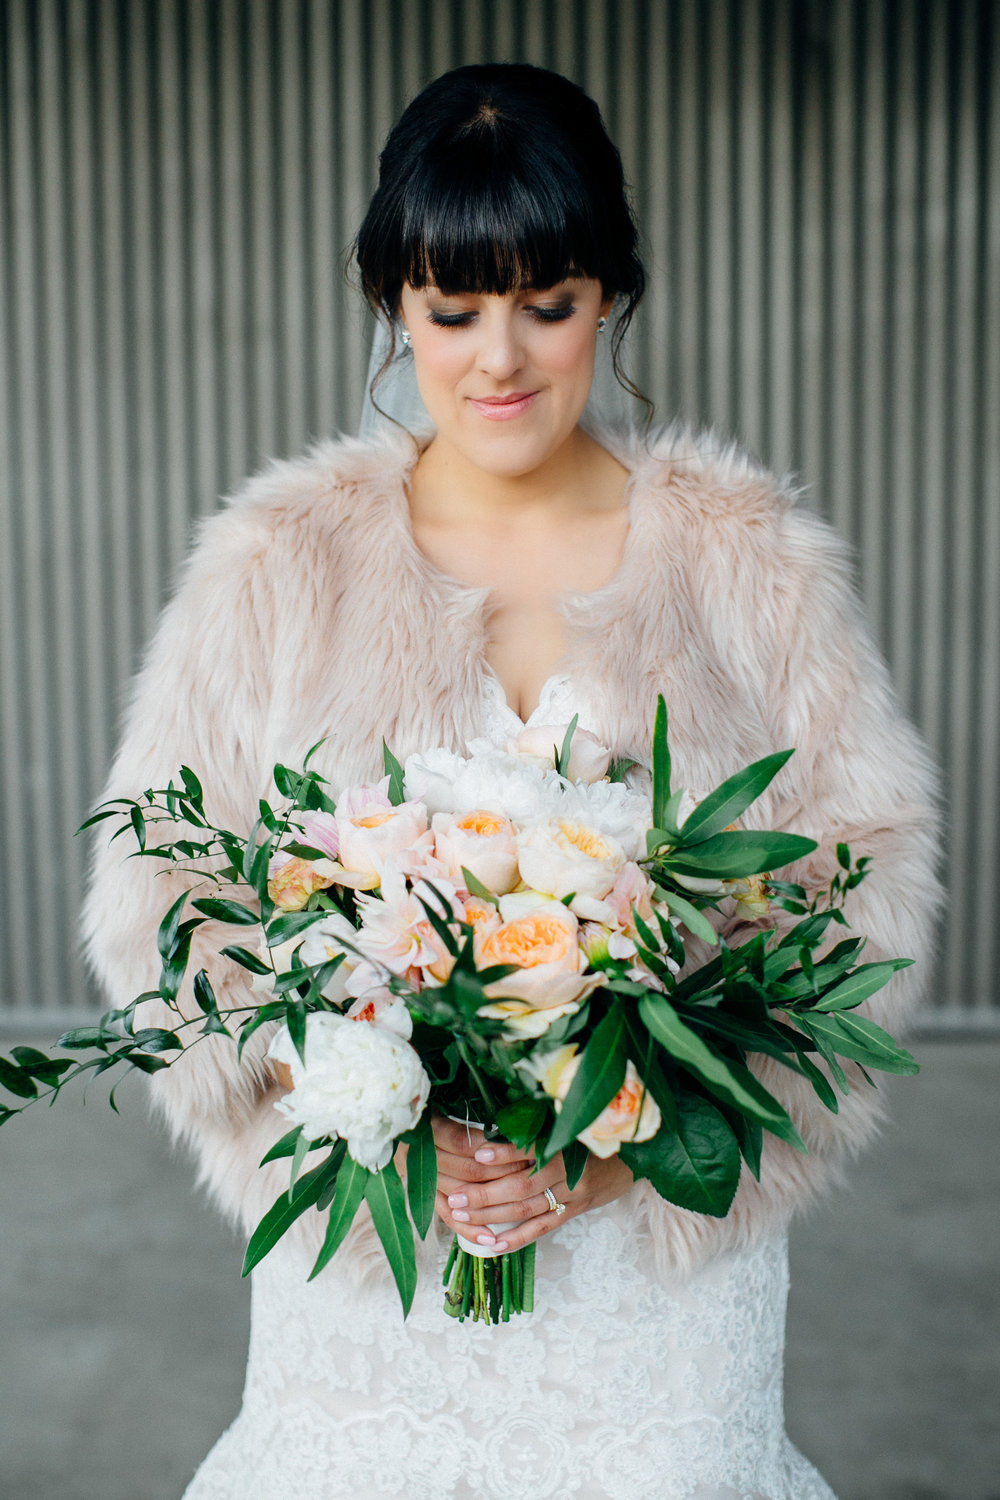 255e6-elegant-country-charm-ranch-wedding-stunning-bride-and-her-bridal-bouquet.jpg